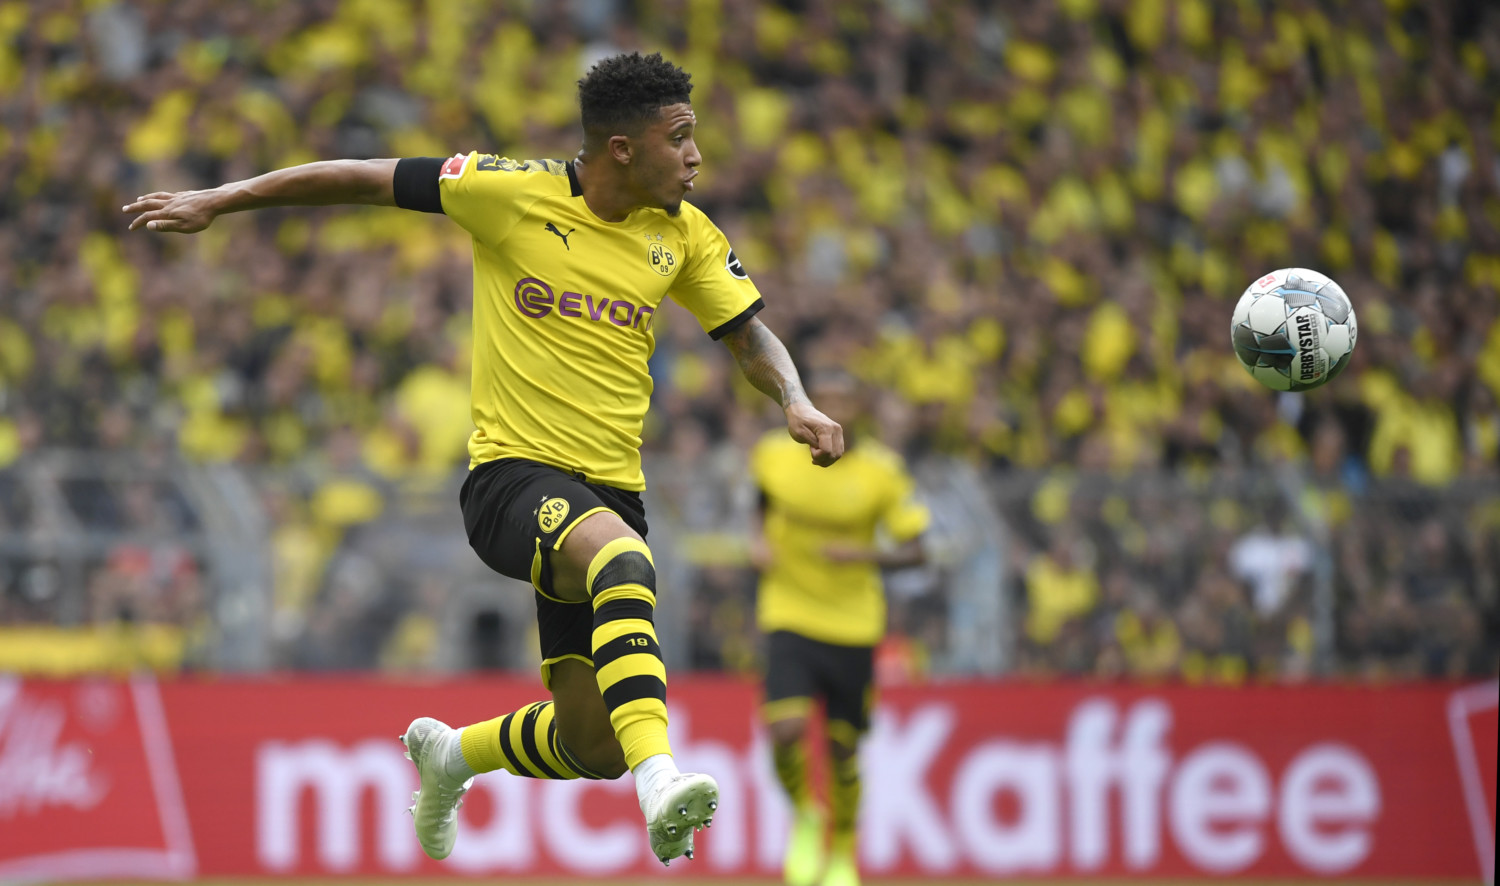 CHEEKY DEVILS: Man United to pay £108m Sancho fee in instalments